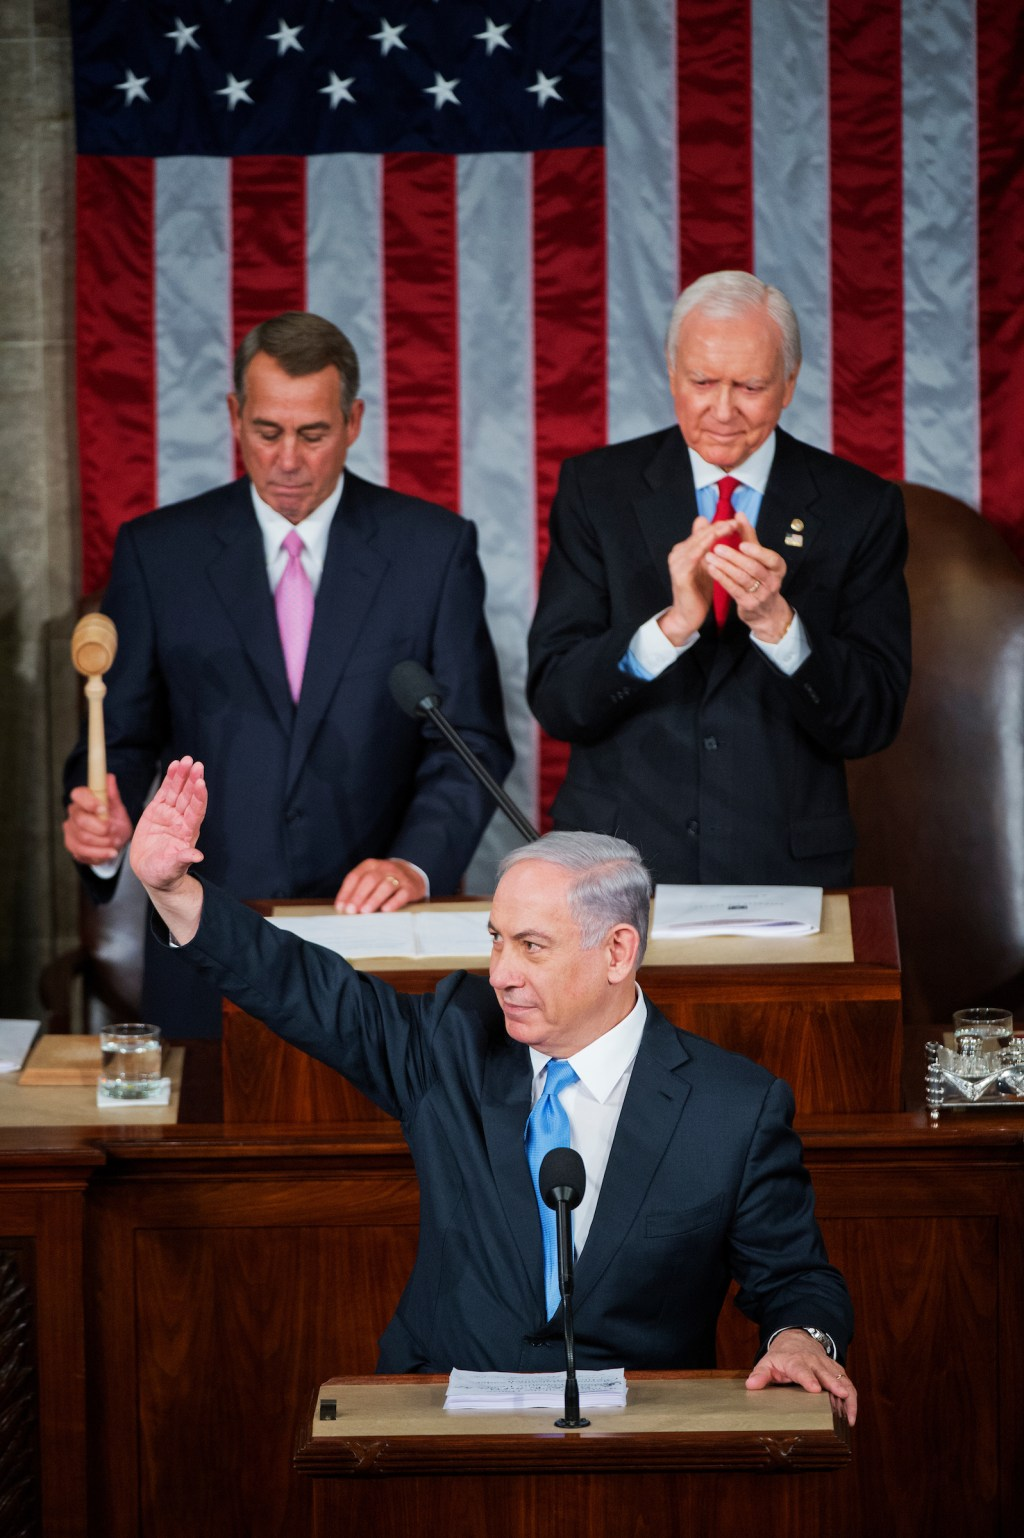 UNITED STATES - MARCH 03: Israeli Prime Minister Benjamin Netanyahu prepares to address a joint meeting of Congress in the House chamber as Speaker John Boehner, R-Ohio, left, and Sen. Orrin Hatch, R-Utah, president pro tempore of the Senate, on look, March 3, 2015. (Photo By Tom Williams/CQ Roll Call)